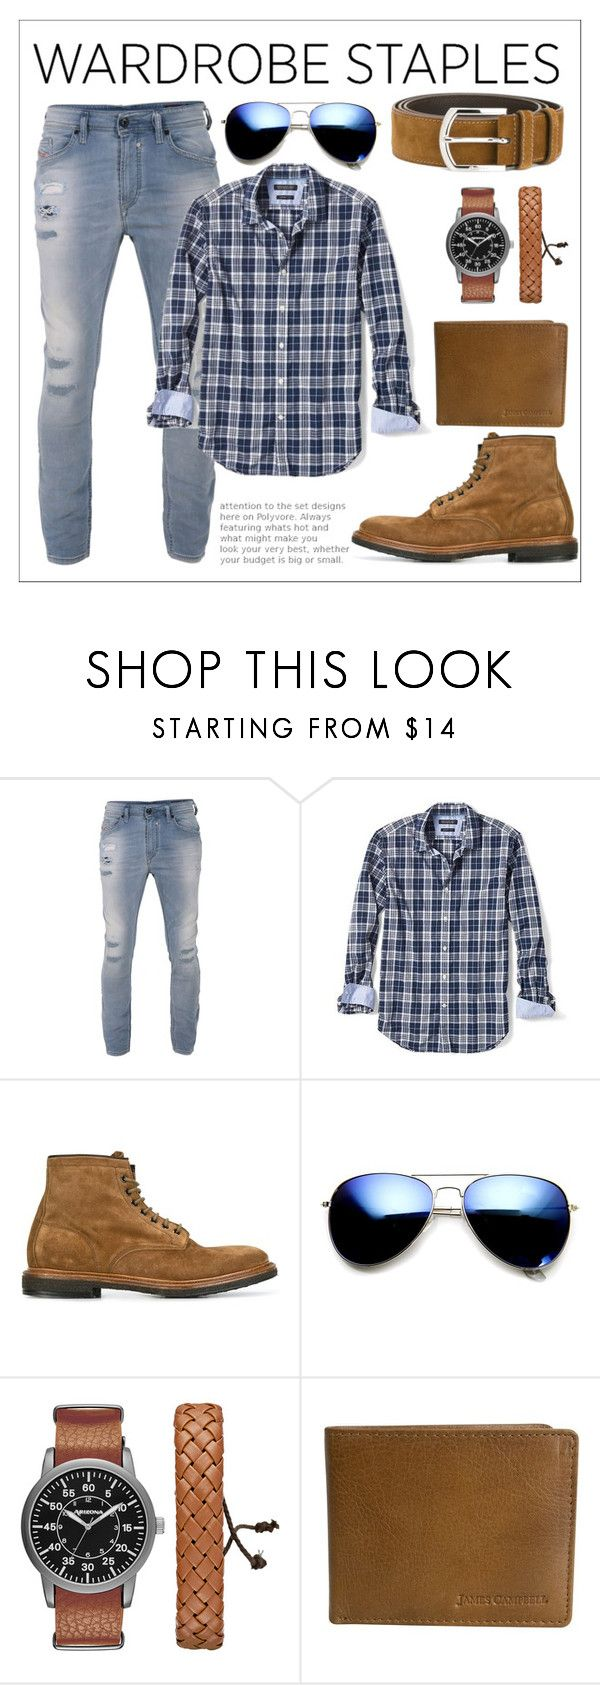 """Men's Plaid Essential's"" by christinadrussell ❤ liked on Polyvore featuring Diesel, Banana Republic, Premiata, ZeroUV, Arizona, James Campbell, Church's, men's fashion, menswear and plaid"